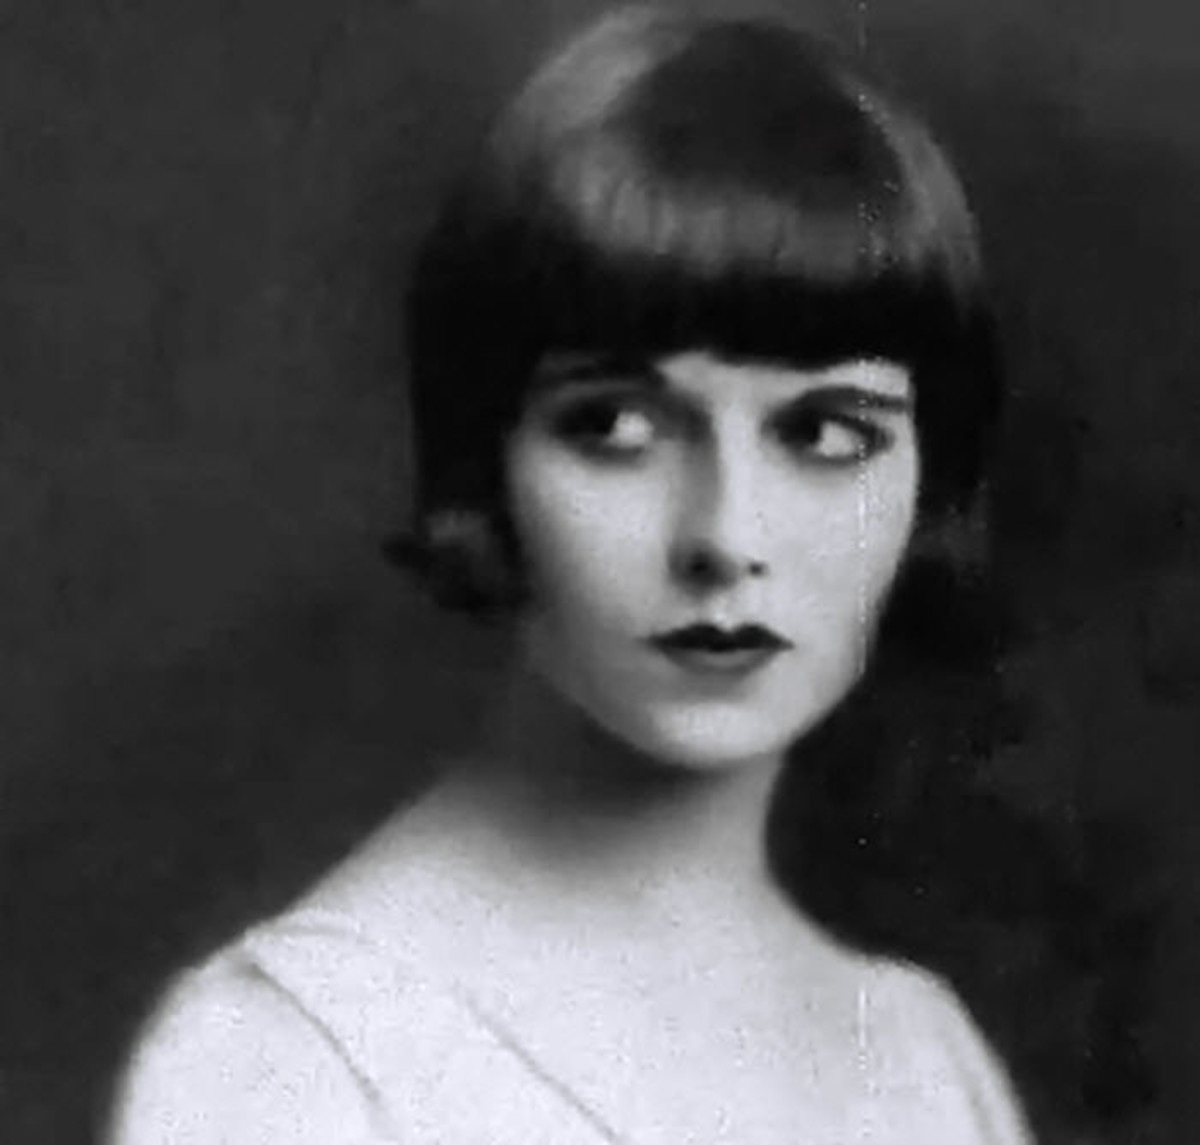 Louise Brooks, nicknamed Lulu